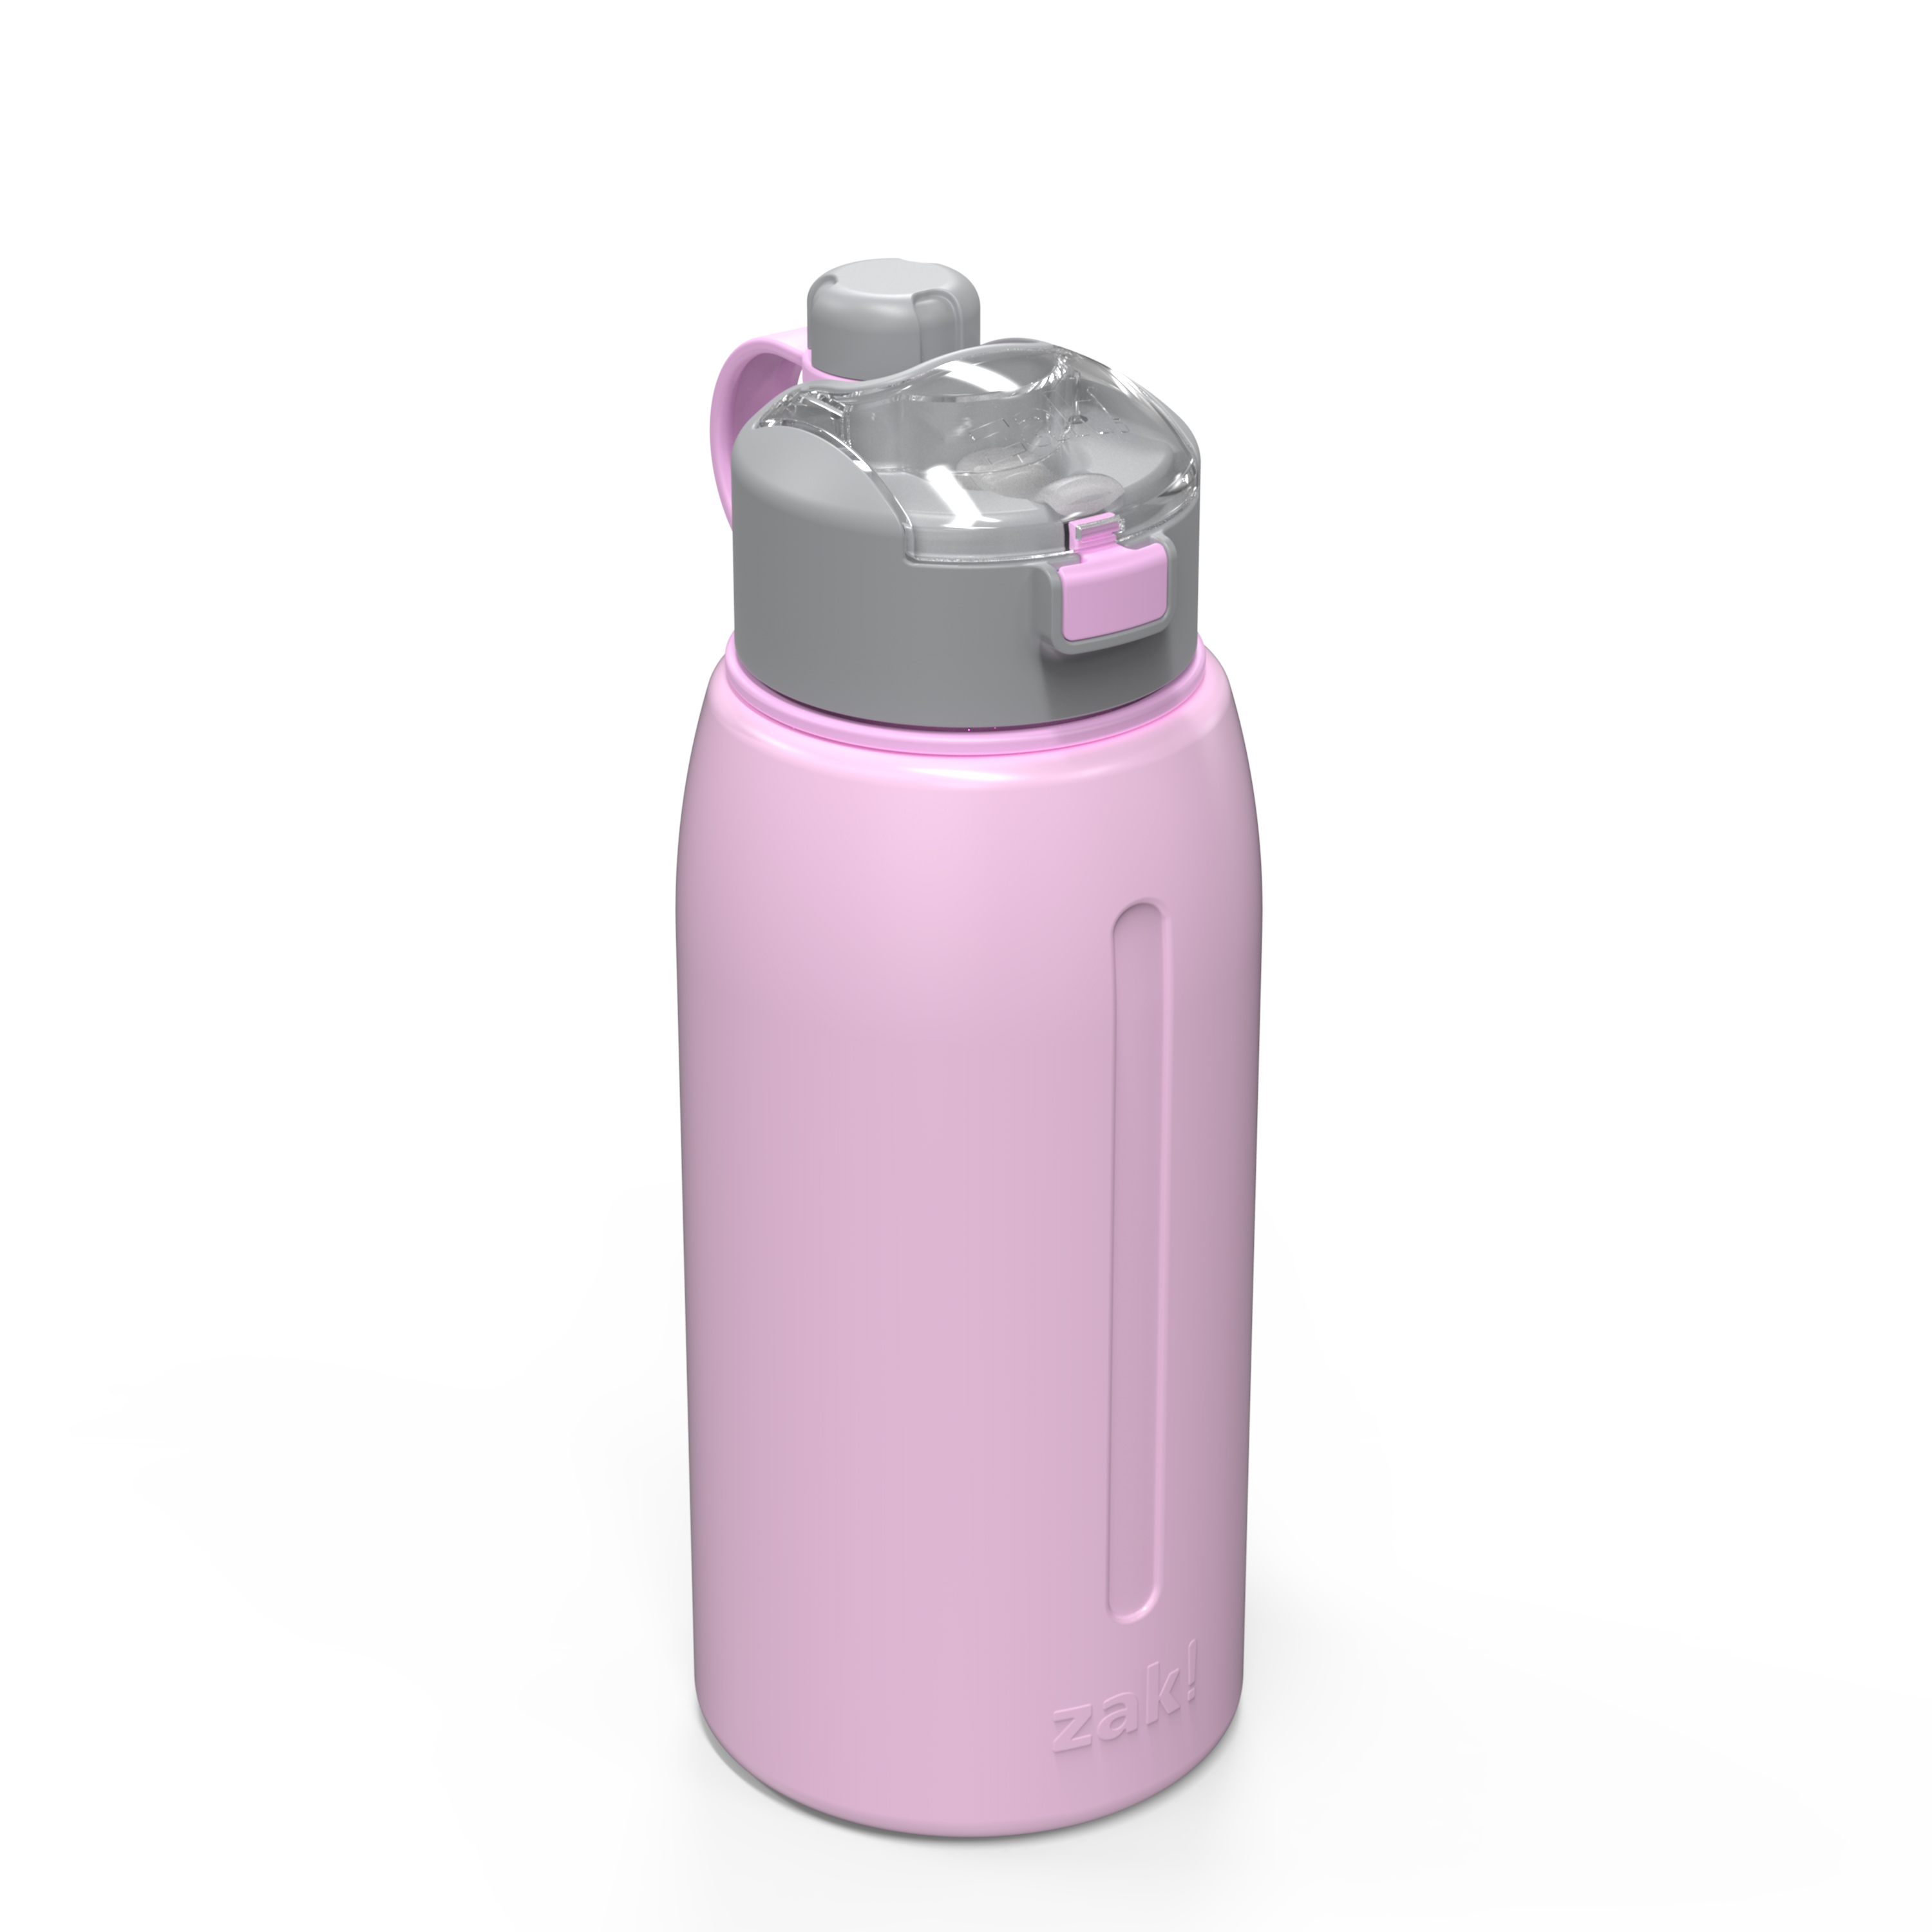 Genesis 32 ounce Vacuum Insulated Stainless Steel Tumbler, Lilac slideshow image 3